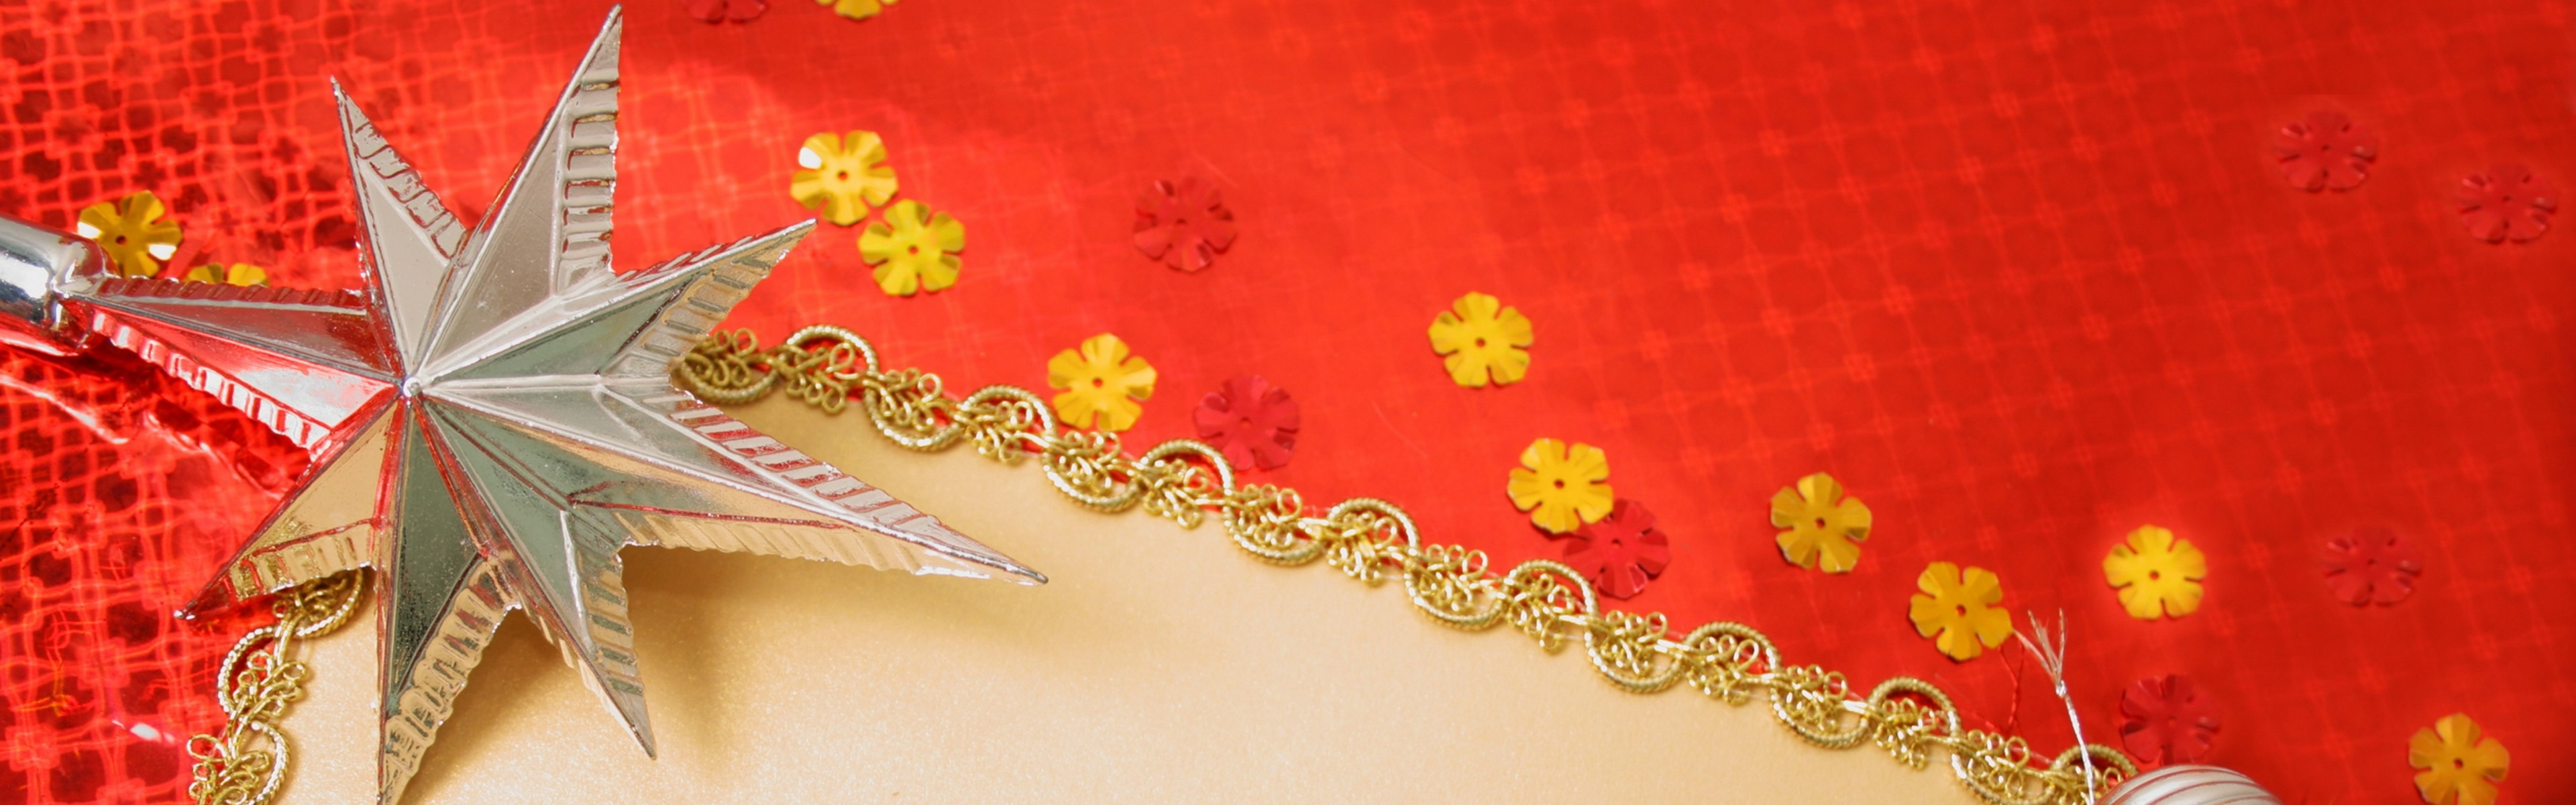 Preview wallpaper gold, red background, new year, toys 3840×1200